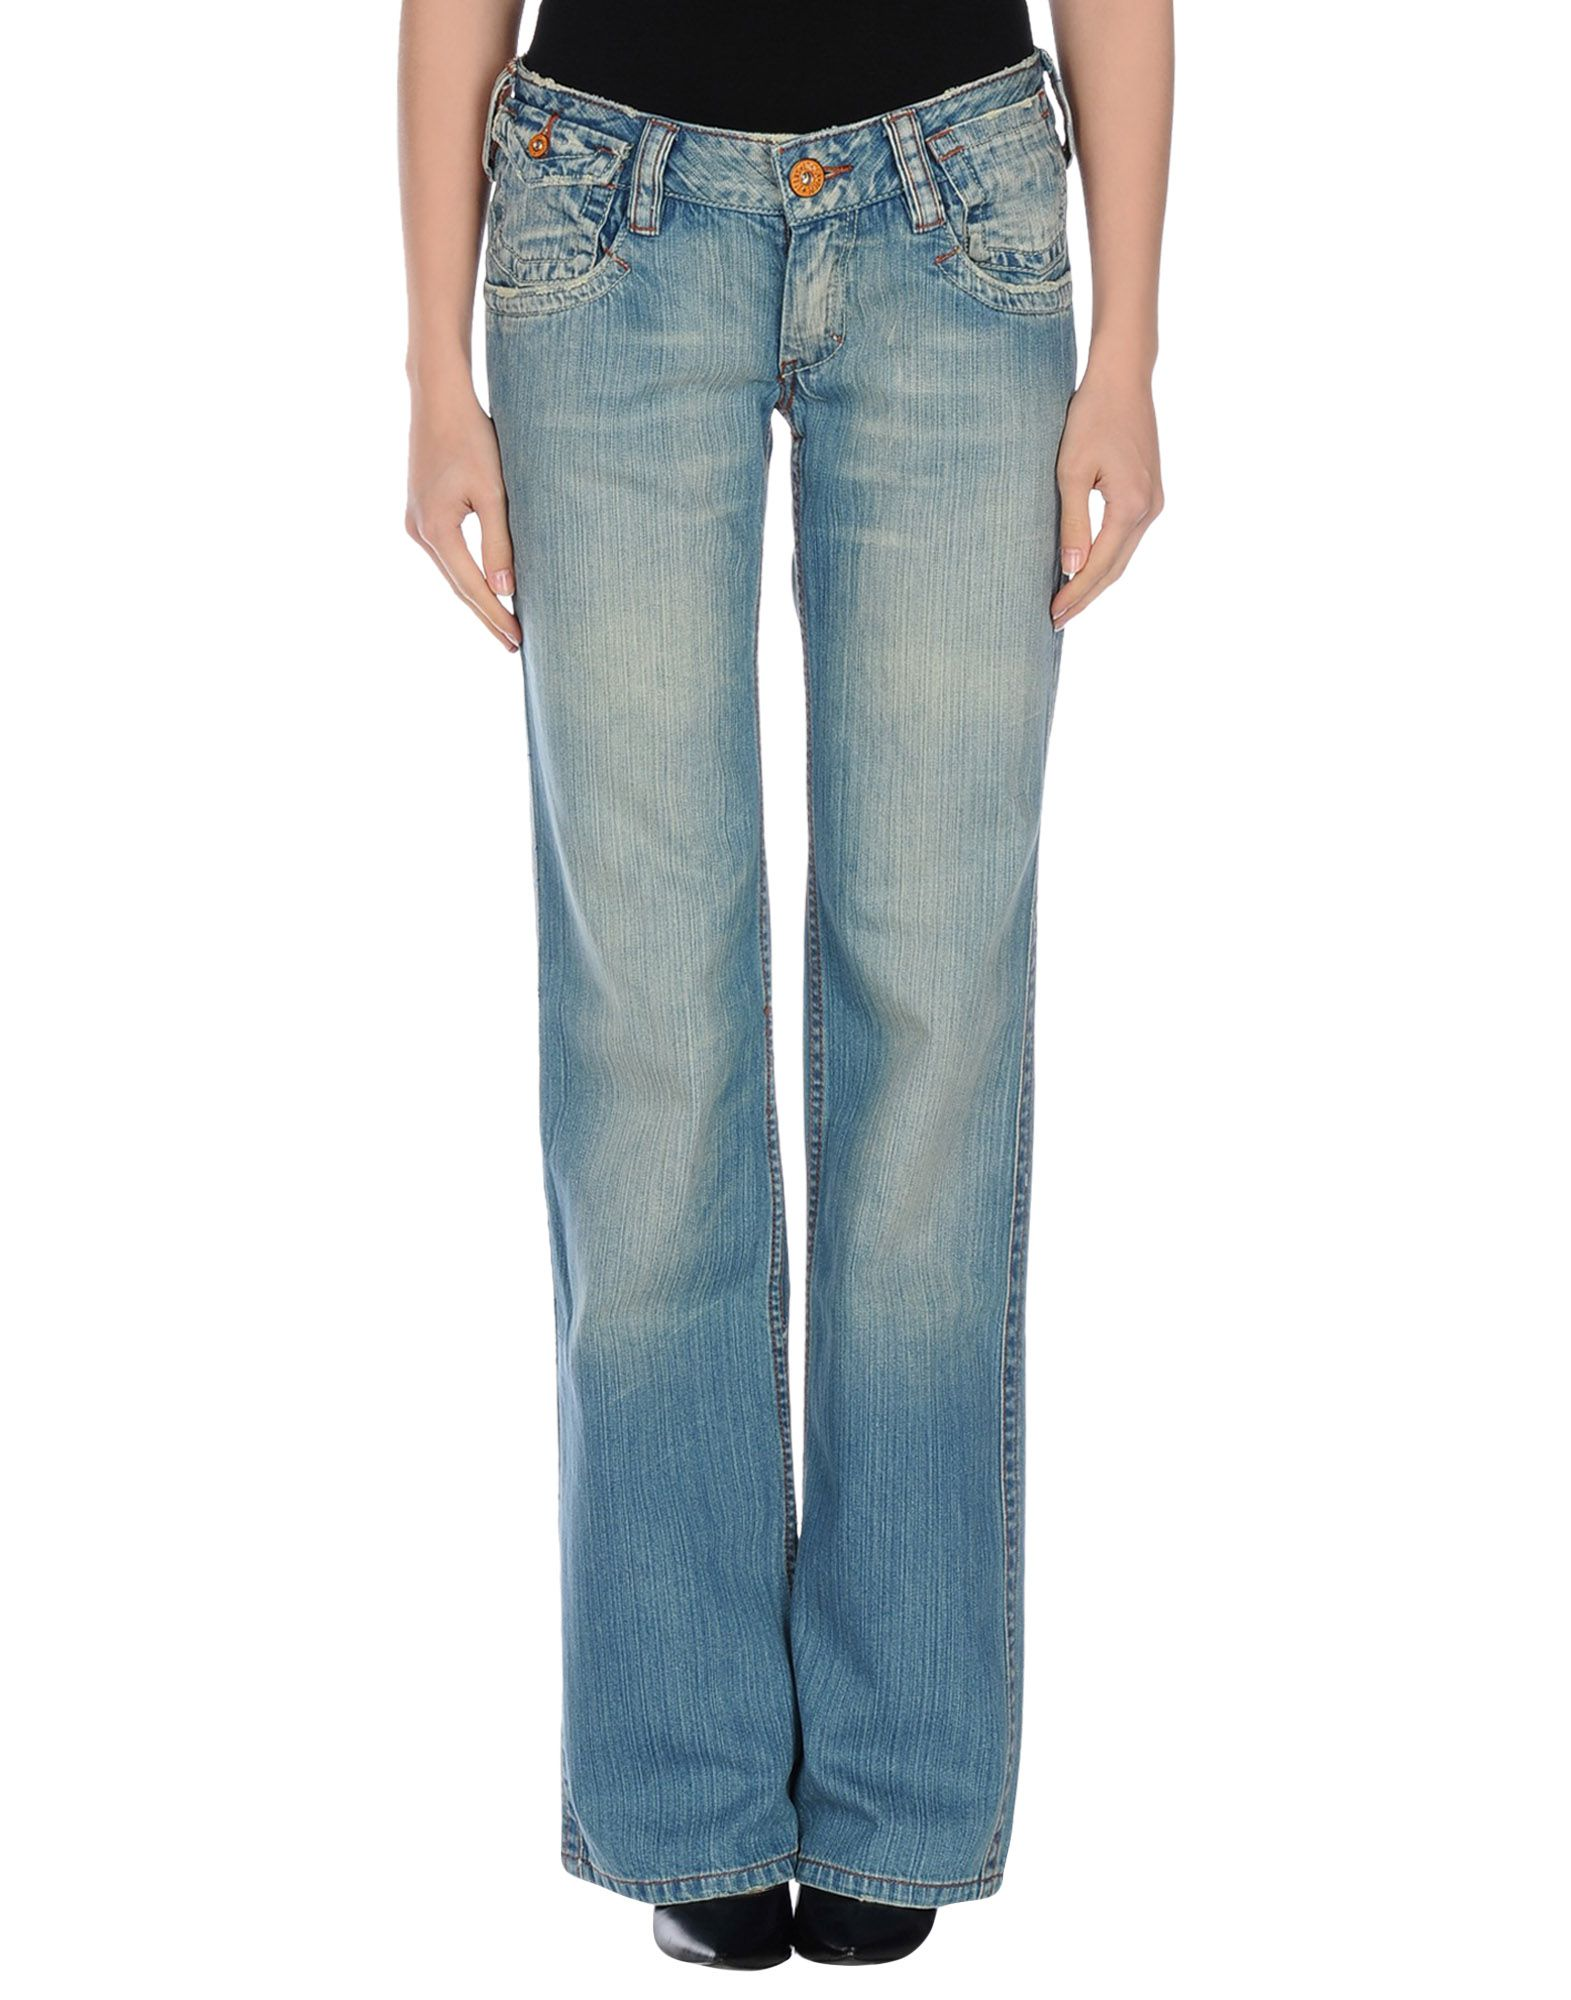 PEPE JEANS 73 Jeans